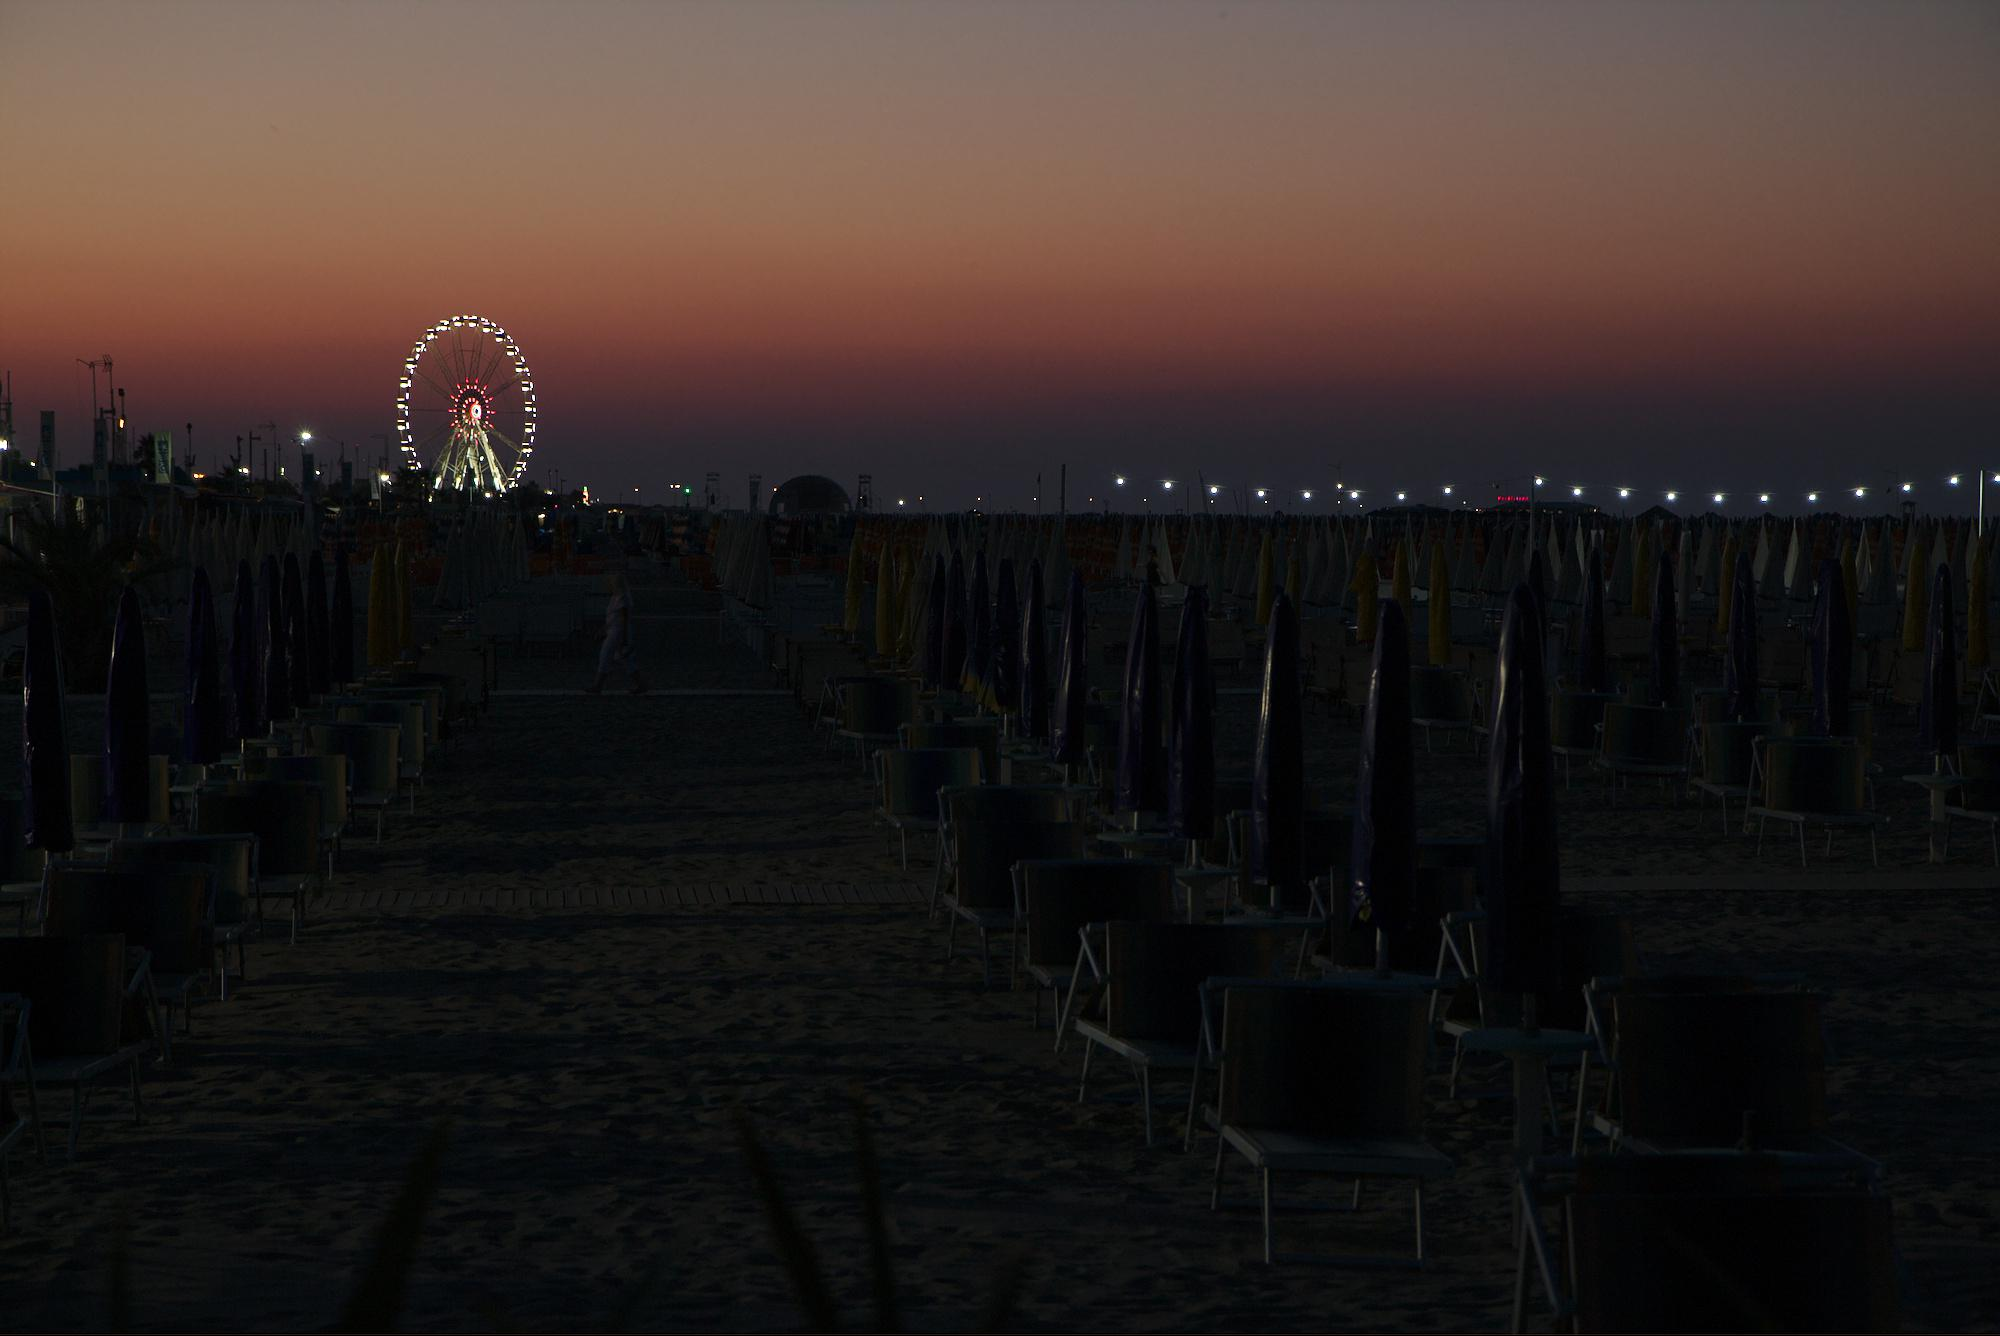 Rimini beach at night with the ferris wheel